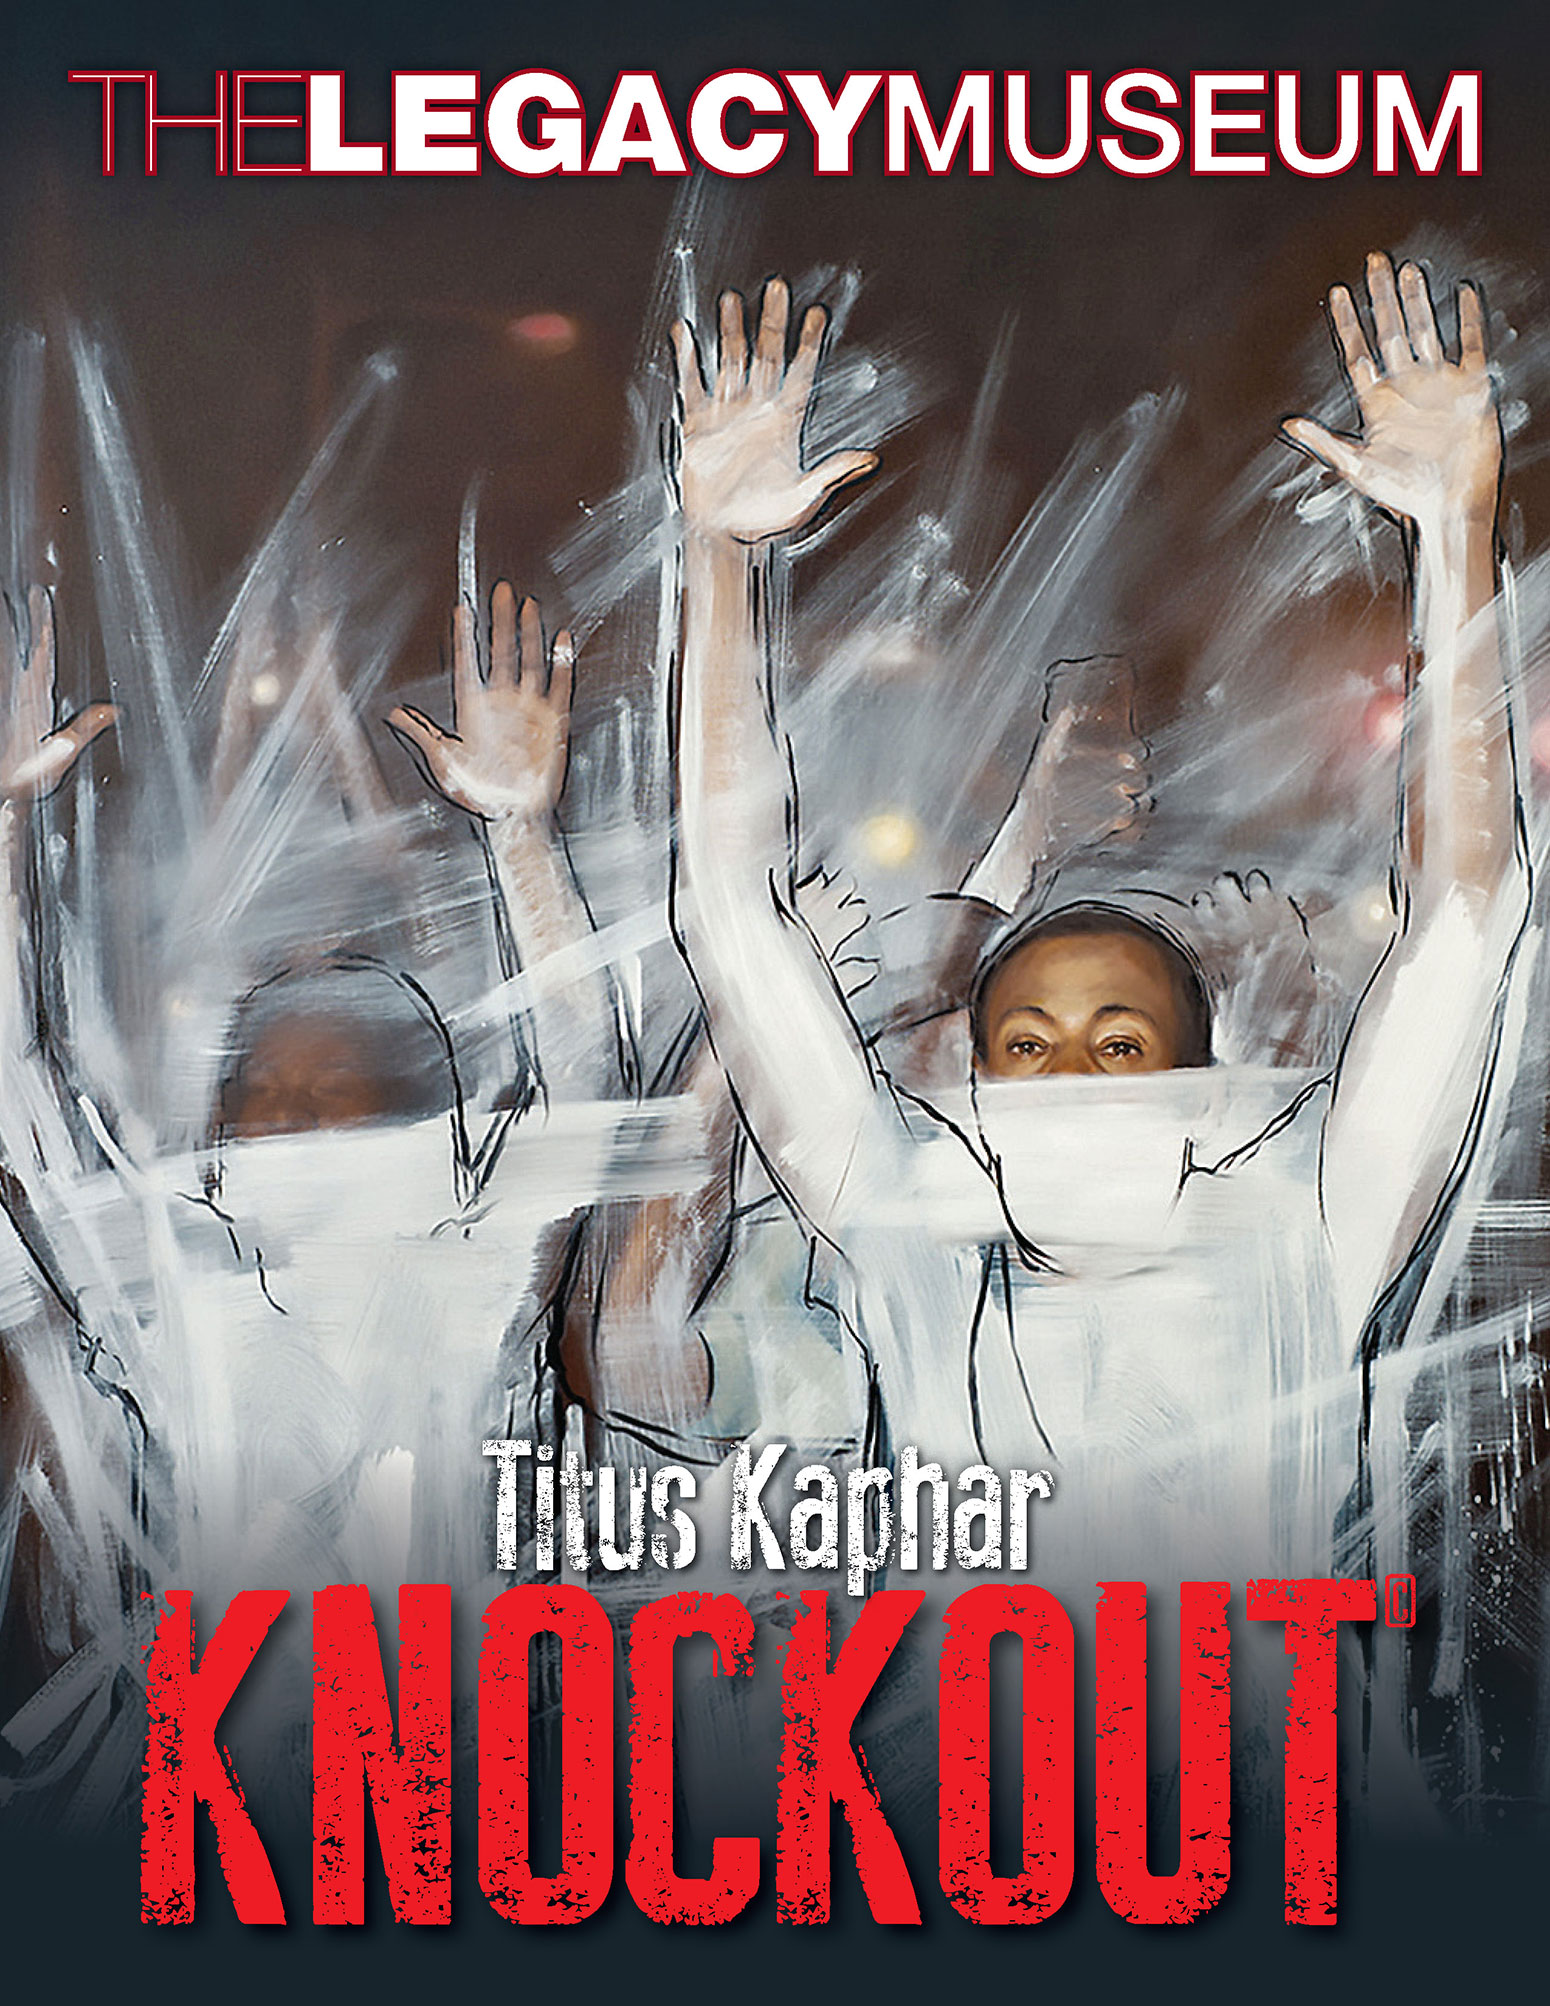 Knockout brochure cover image